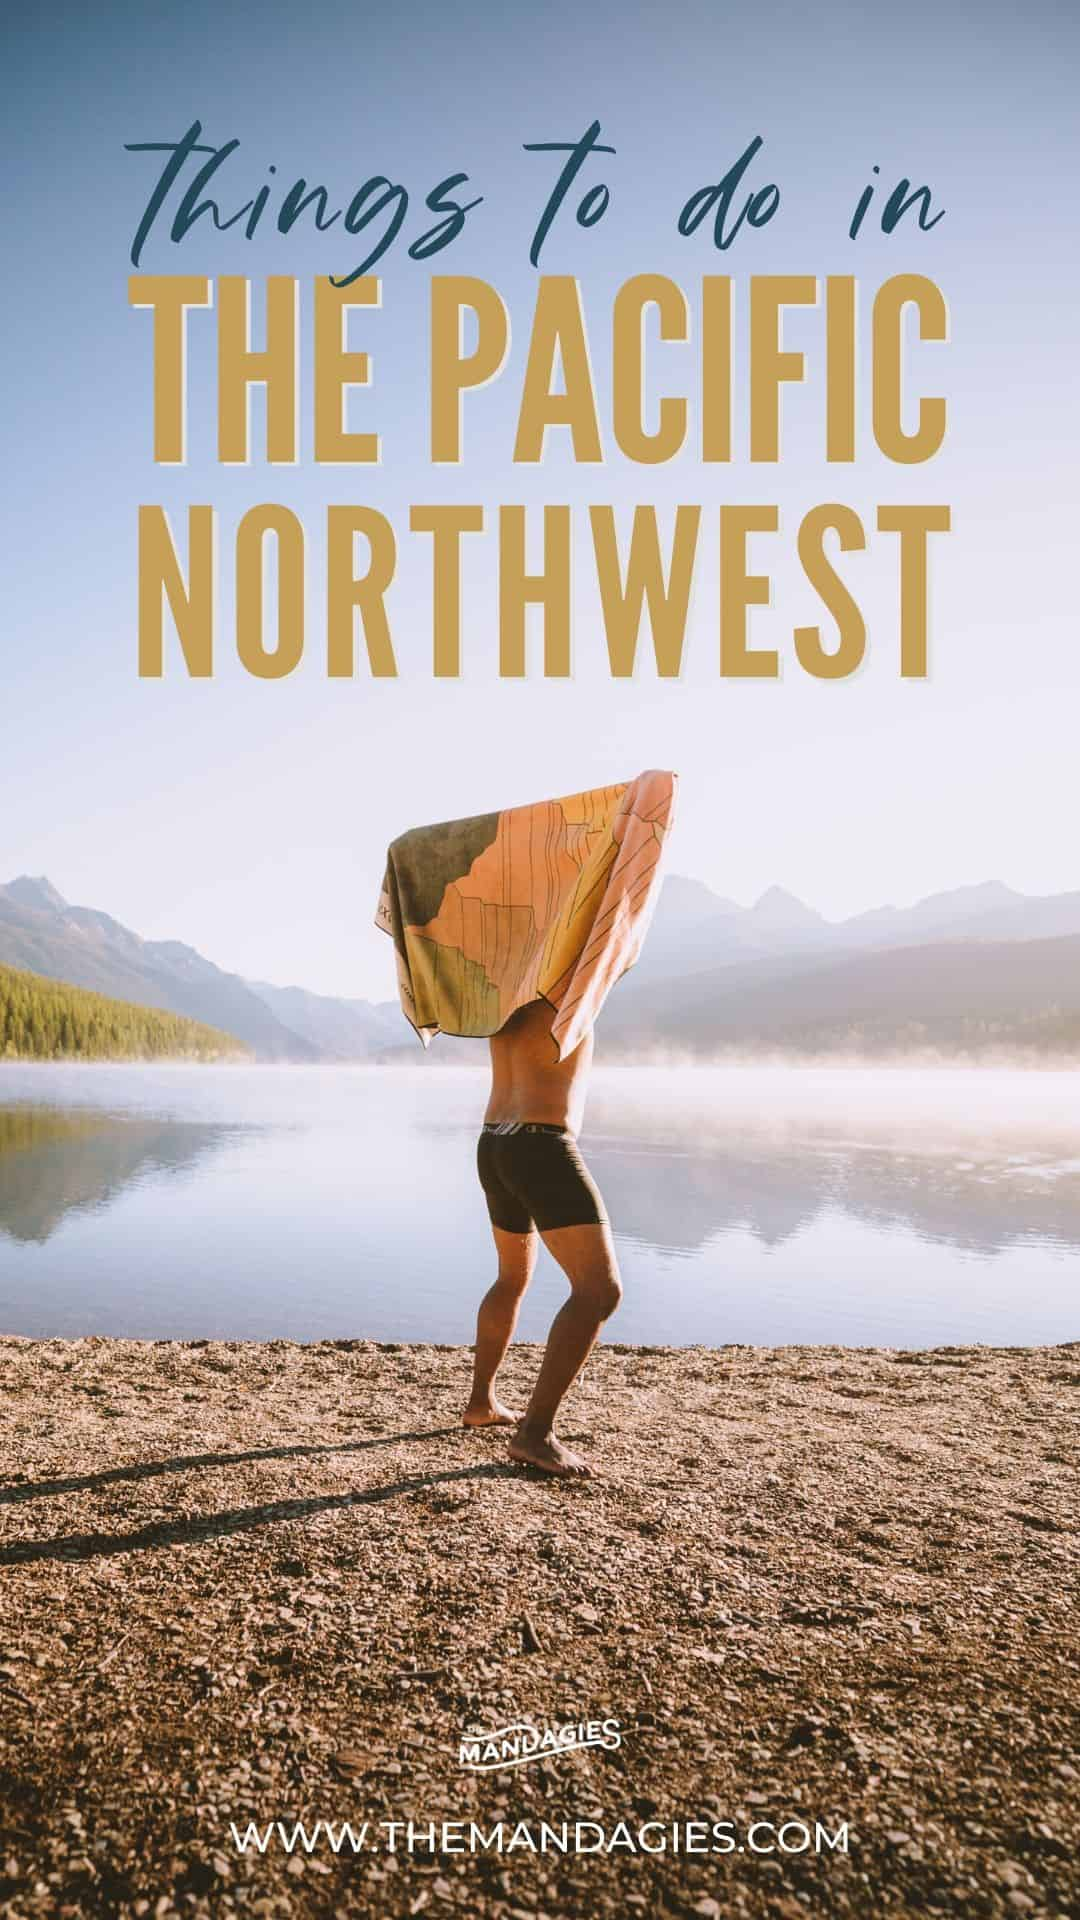 Ready to plan a trip to the Pacific Northwest but don't know where to start? We're breaking down region by region to help you figure out where to start your Pacific Northwest Road Trip, and PNW Getaway ideas in Washington, Oregon, Idaho, California, British Columbia and more! #washington #glaciernps #olympicnationalpark #mountrainier #PacificNorrthwest #PNW #PNWroadtrip #oregon #photography #landscape #mountains #USA